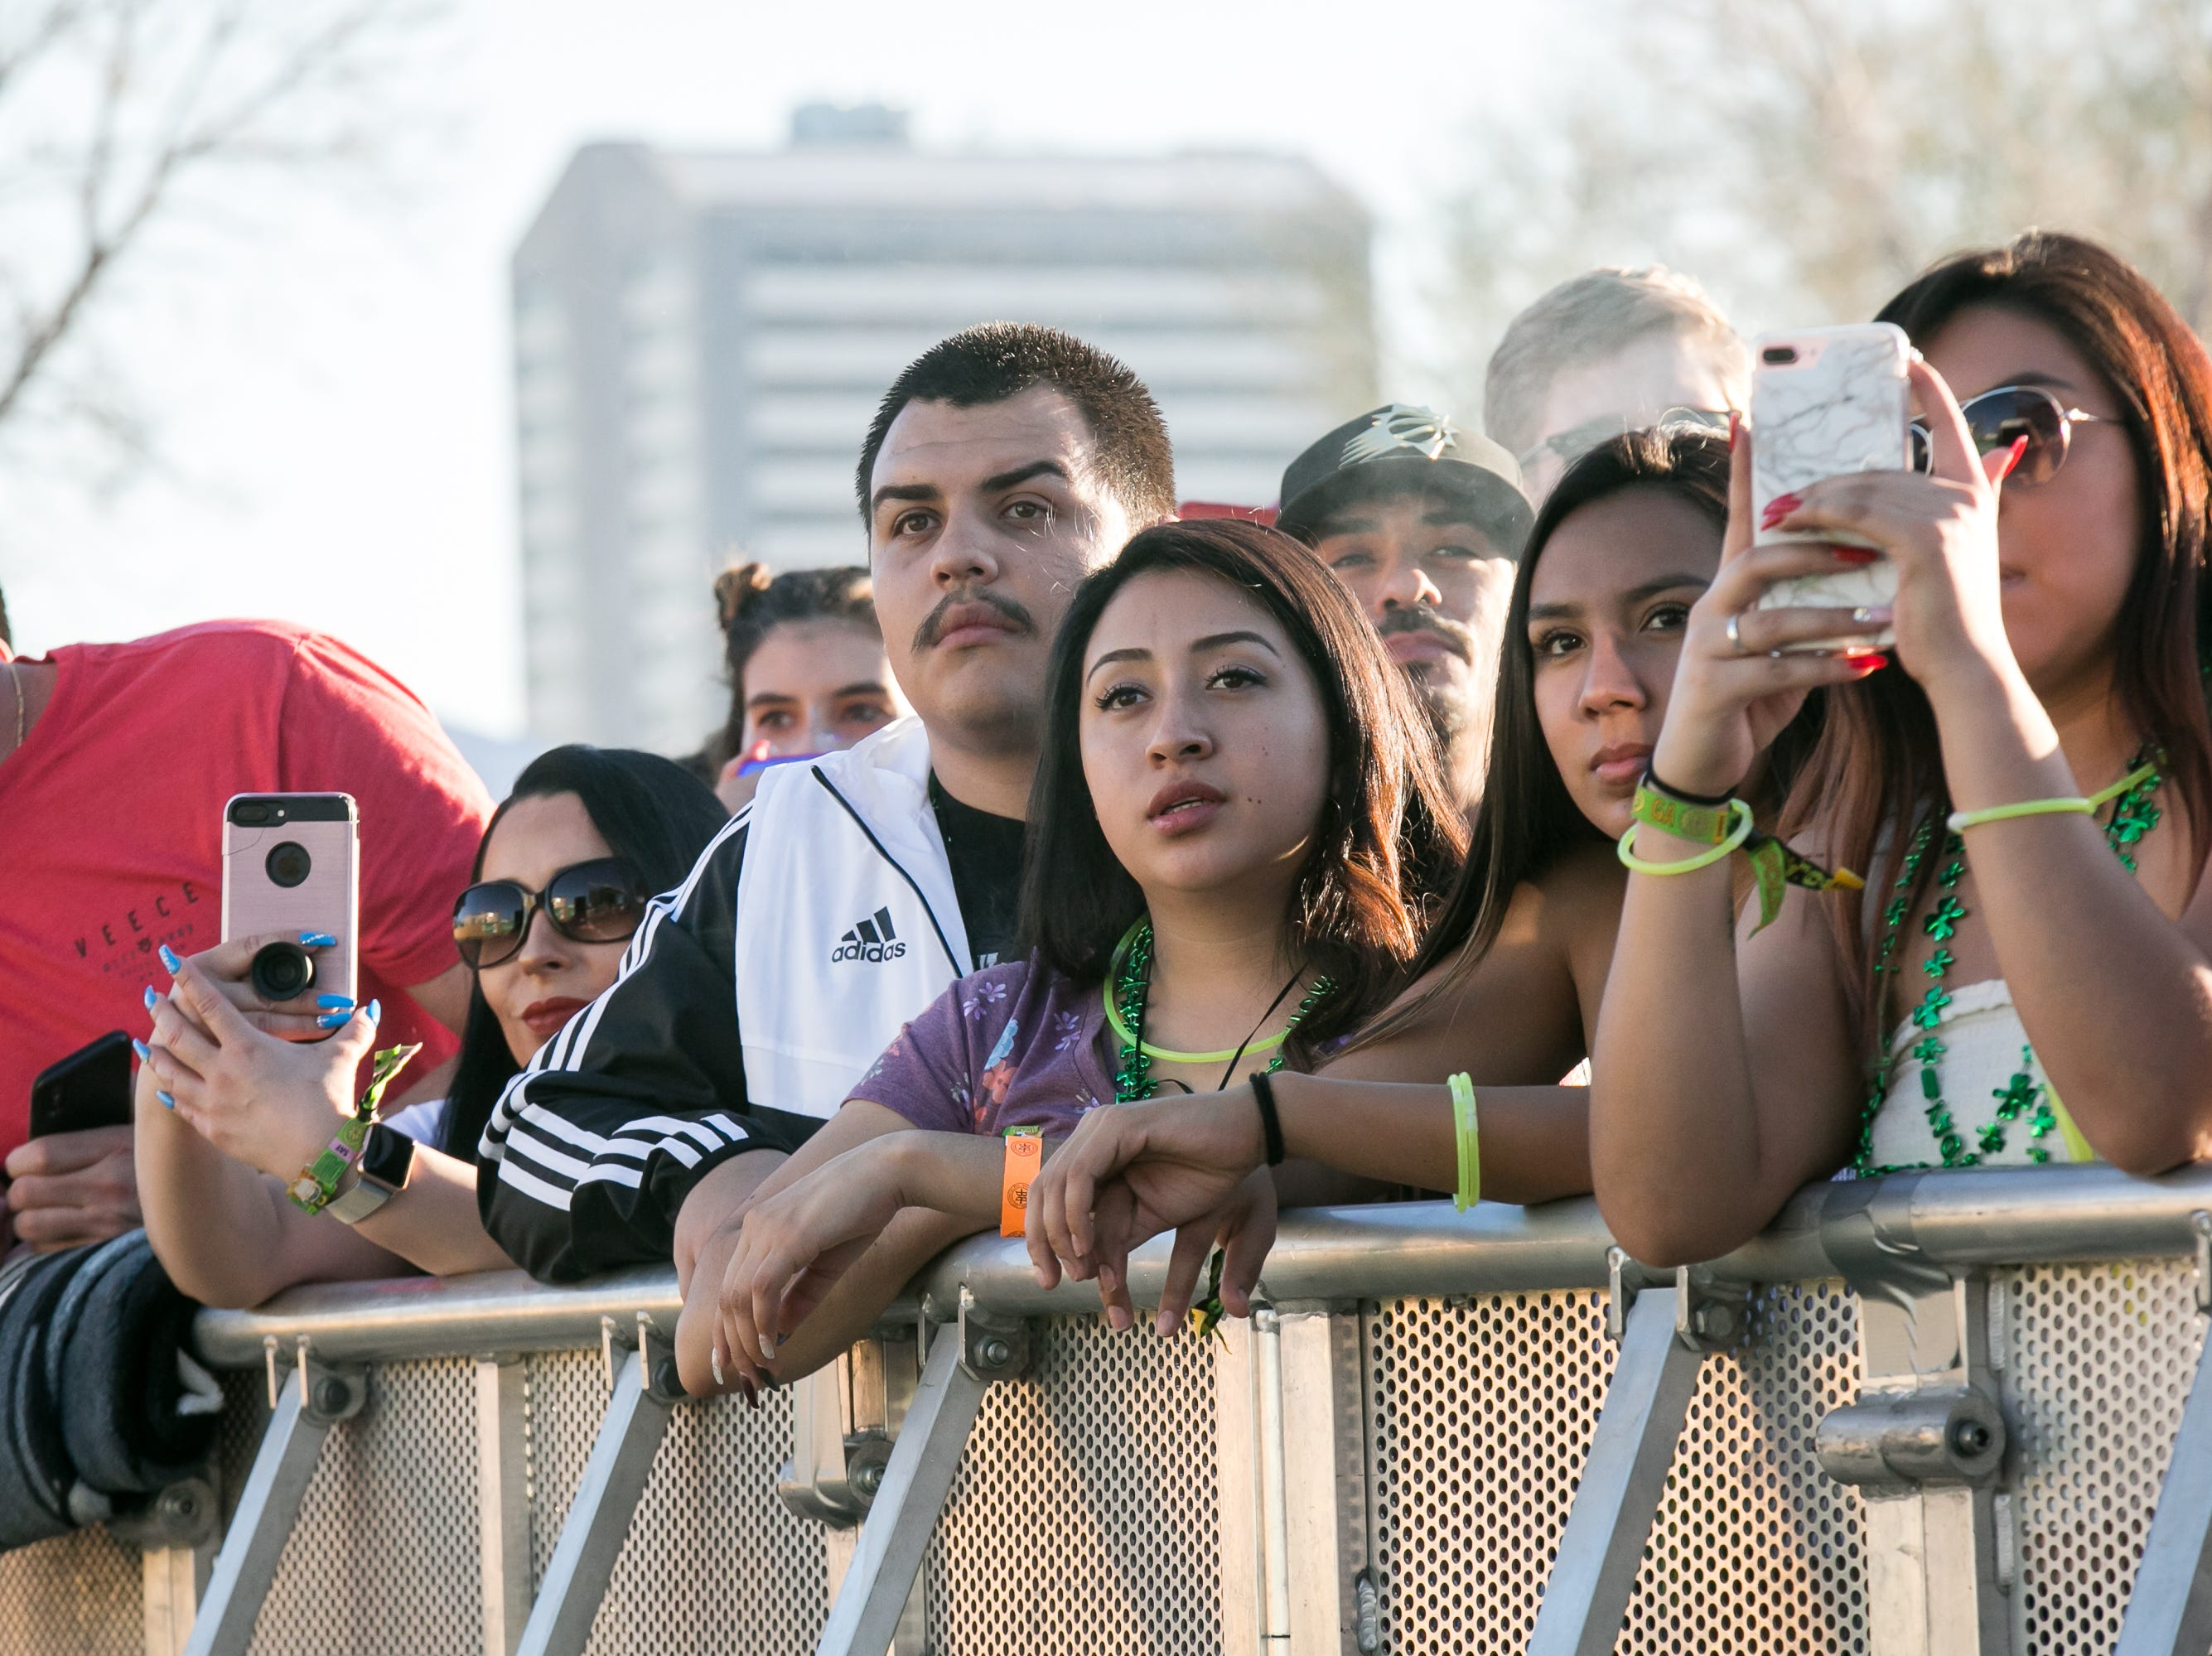 Fans enjoyed Young Dolph's set during Pot of Gold Music Festival on Sunday, March 17, 2019.